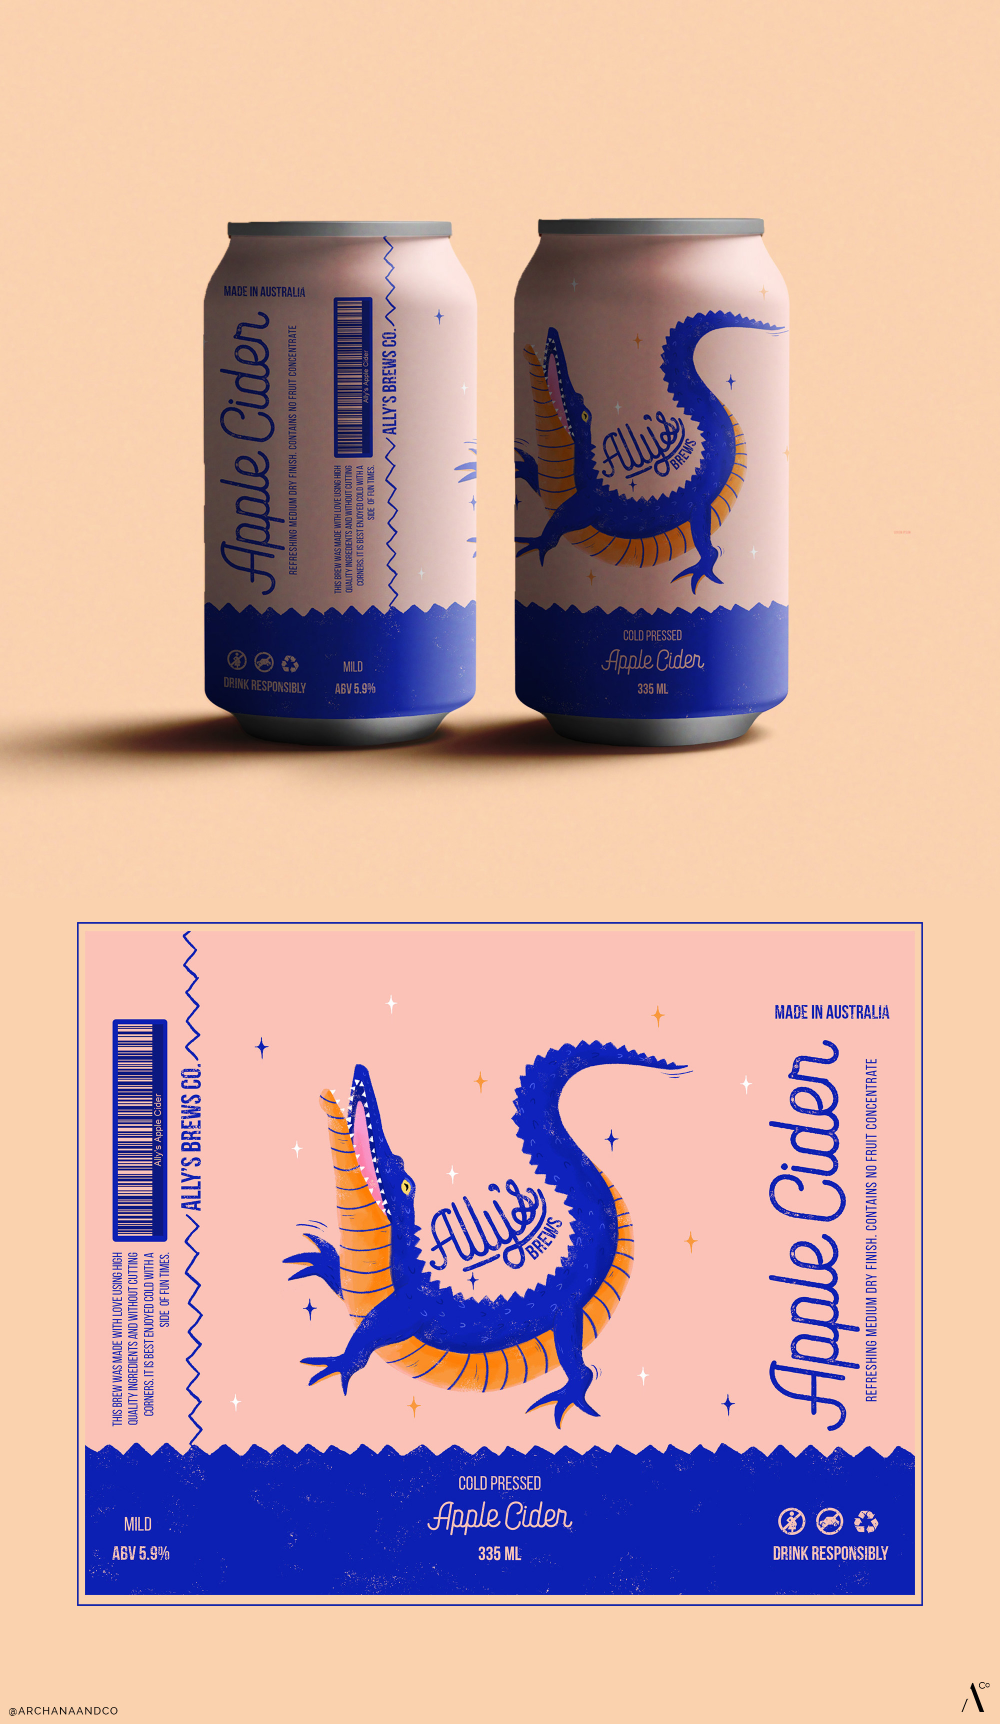 Archana and Co Creates a Fun, Illustrated Beer Label Concept With Ally's Brews